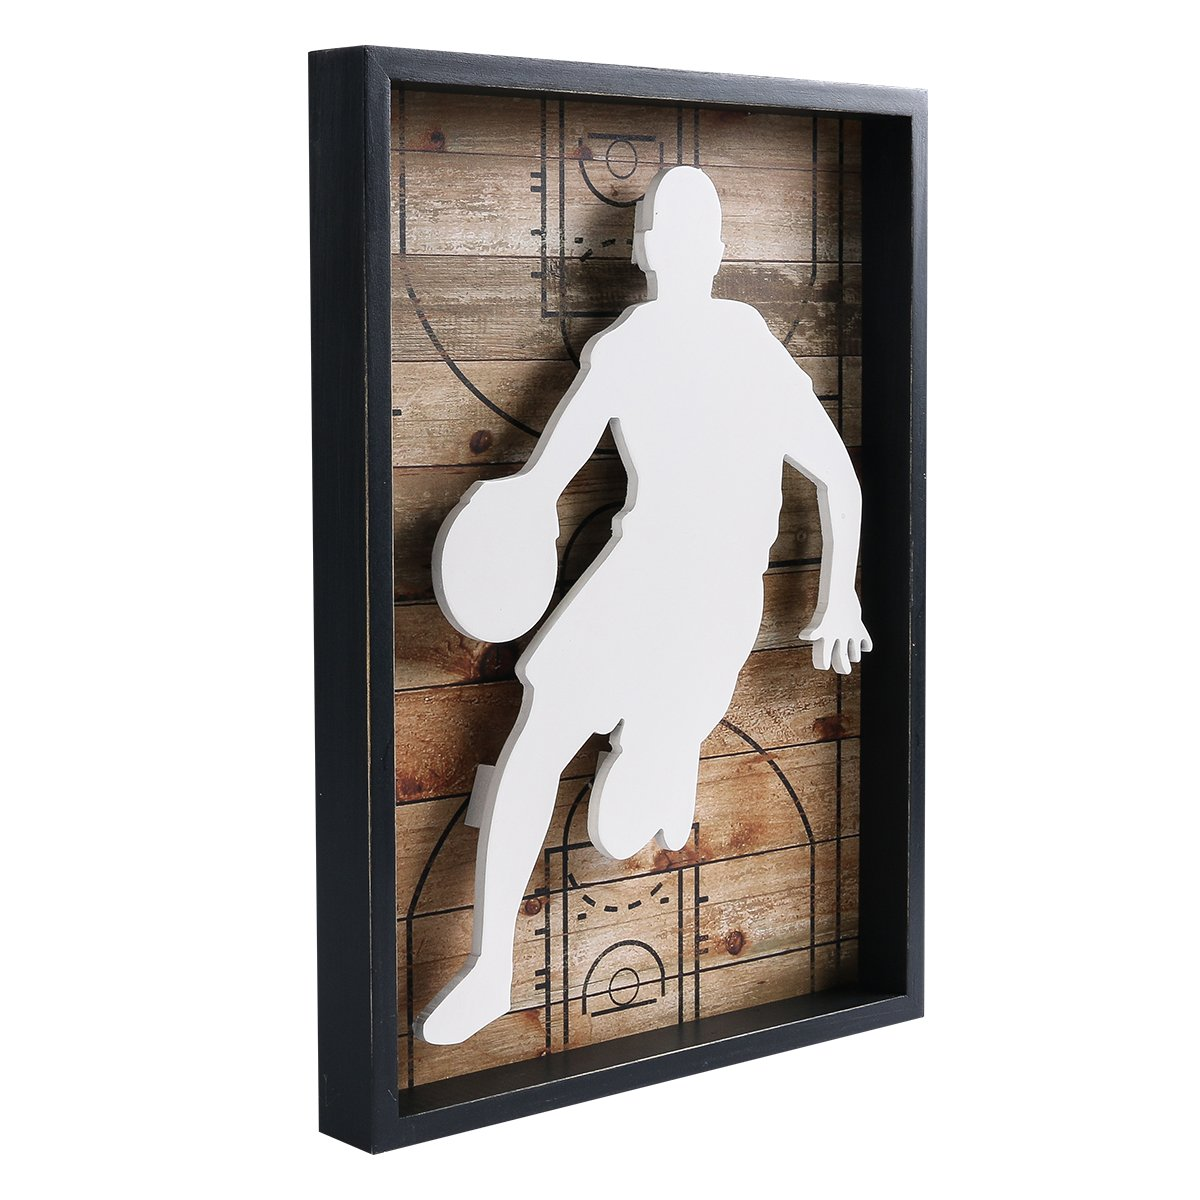 Amazon com nikky home outdoors sports basketball wooden framed wall art decor 12 x 16 kitchen dining